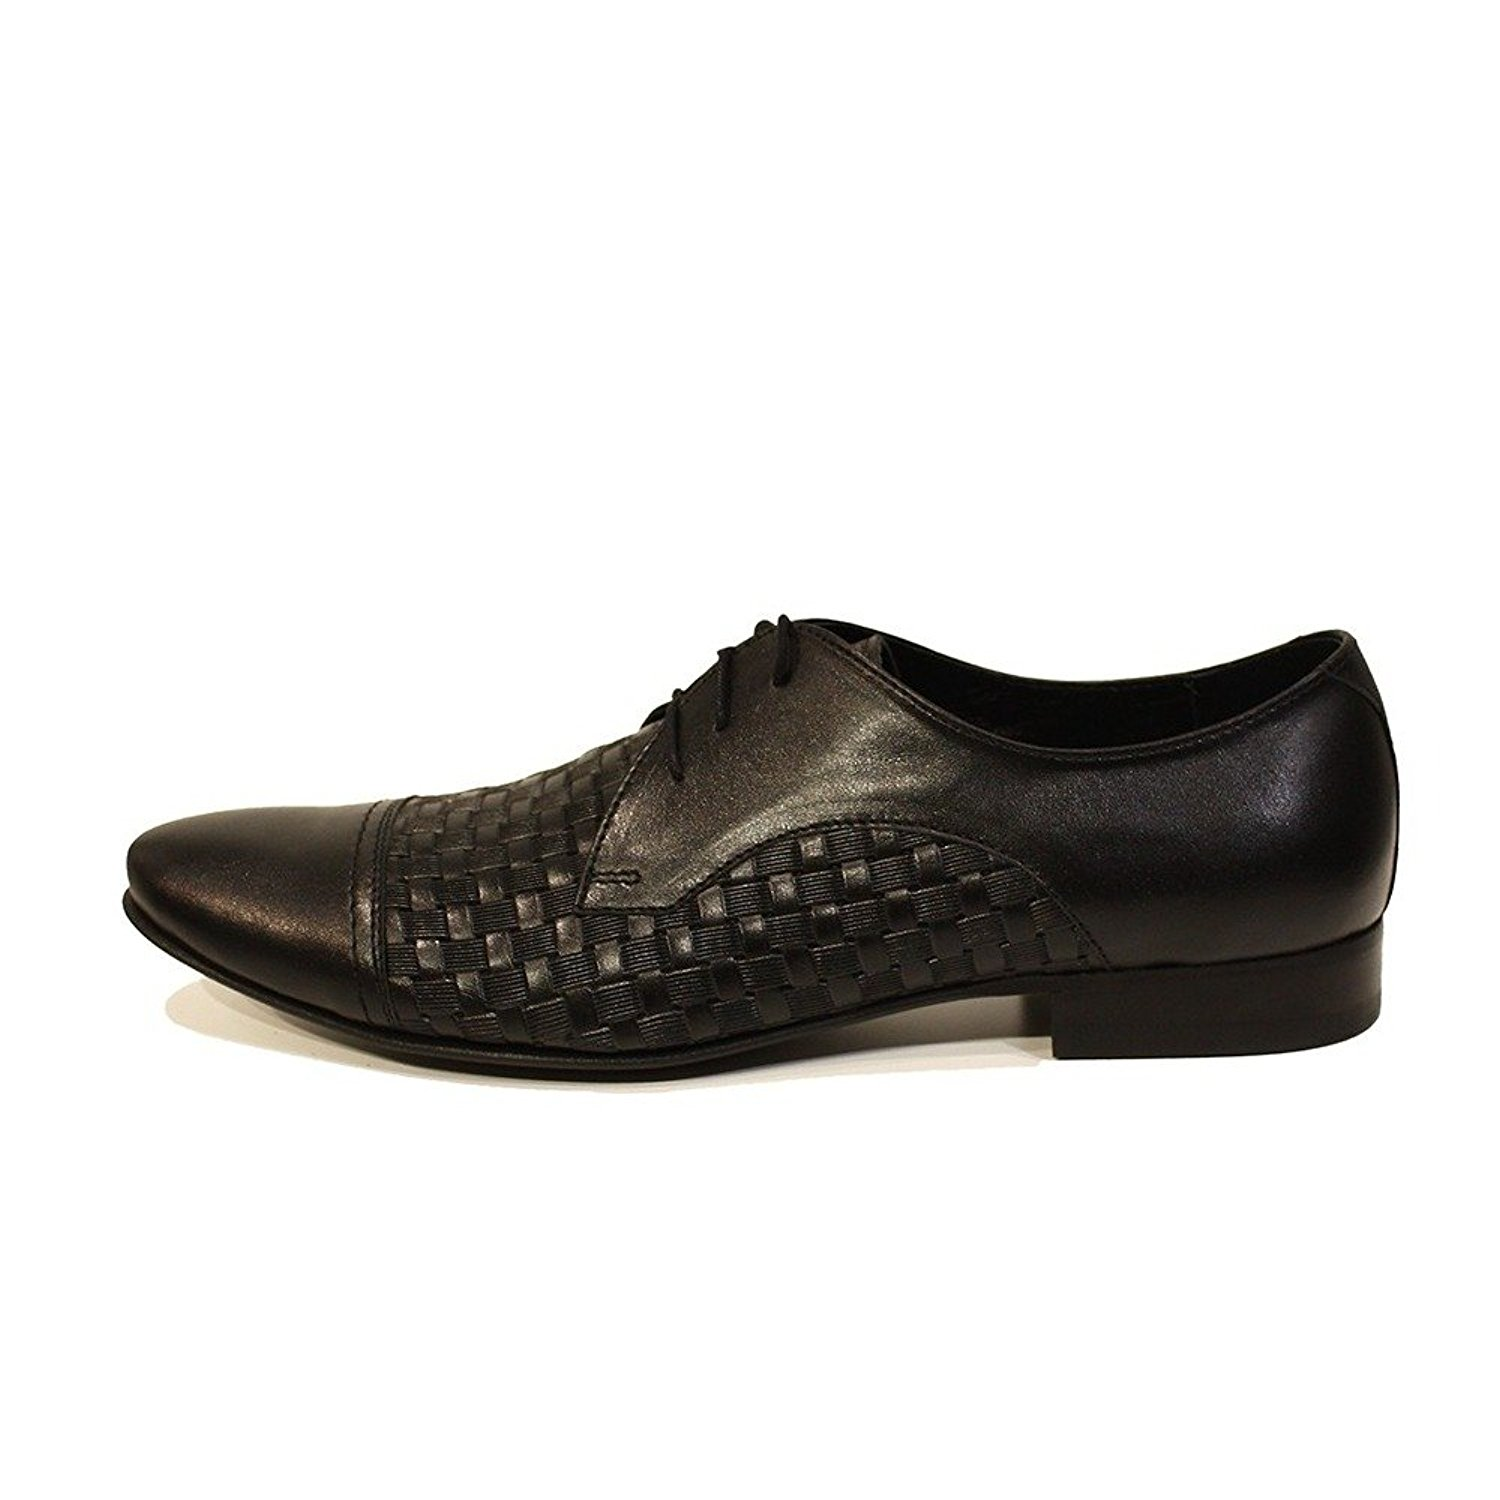 Modello Pascasio - Handmade Italian Mens Black Oxfords Dress Shoes - Cowhide Embossed Leather - Lace-up